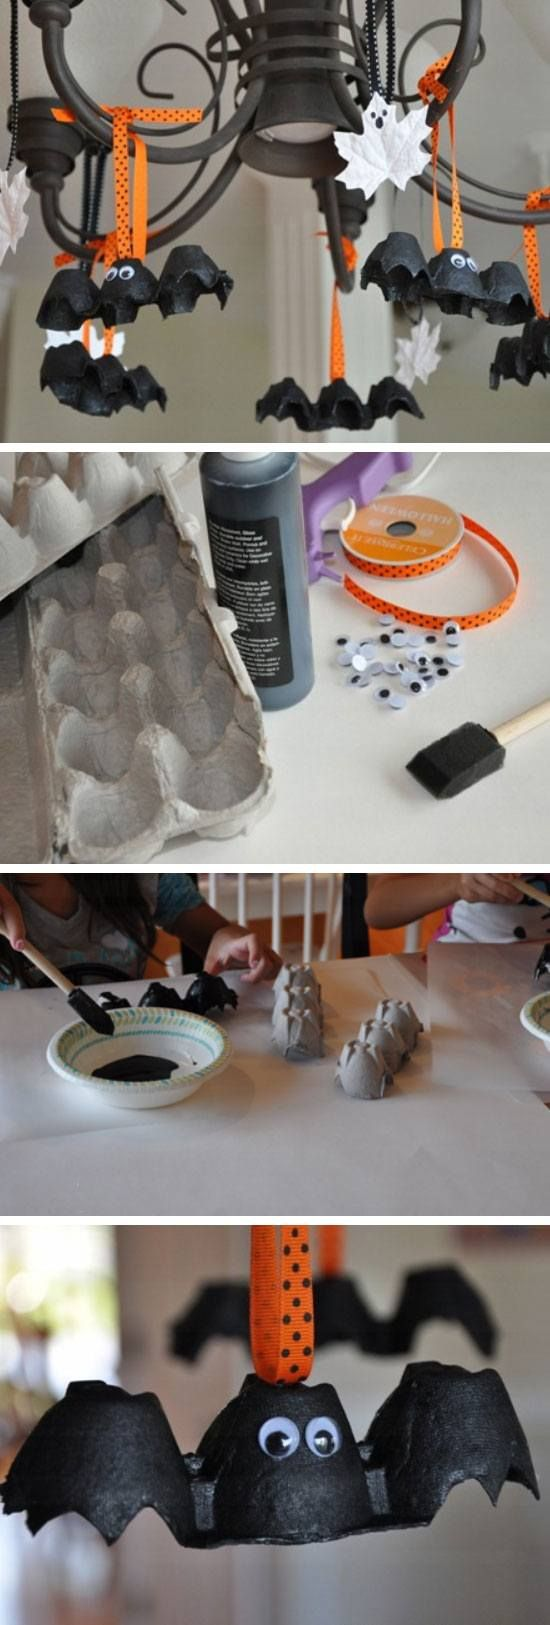 25 DIY Halloween Decorating Ideas for Kids on a Budget Halloween - Cheap Diy Halloween Decorations